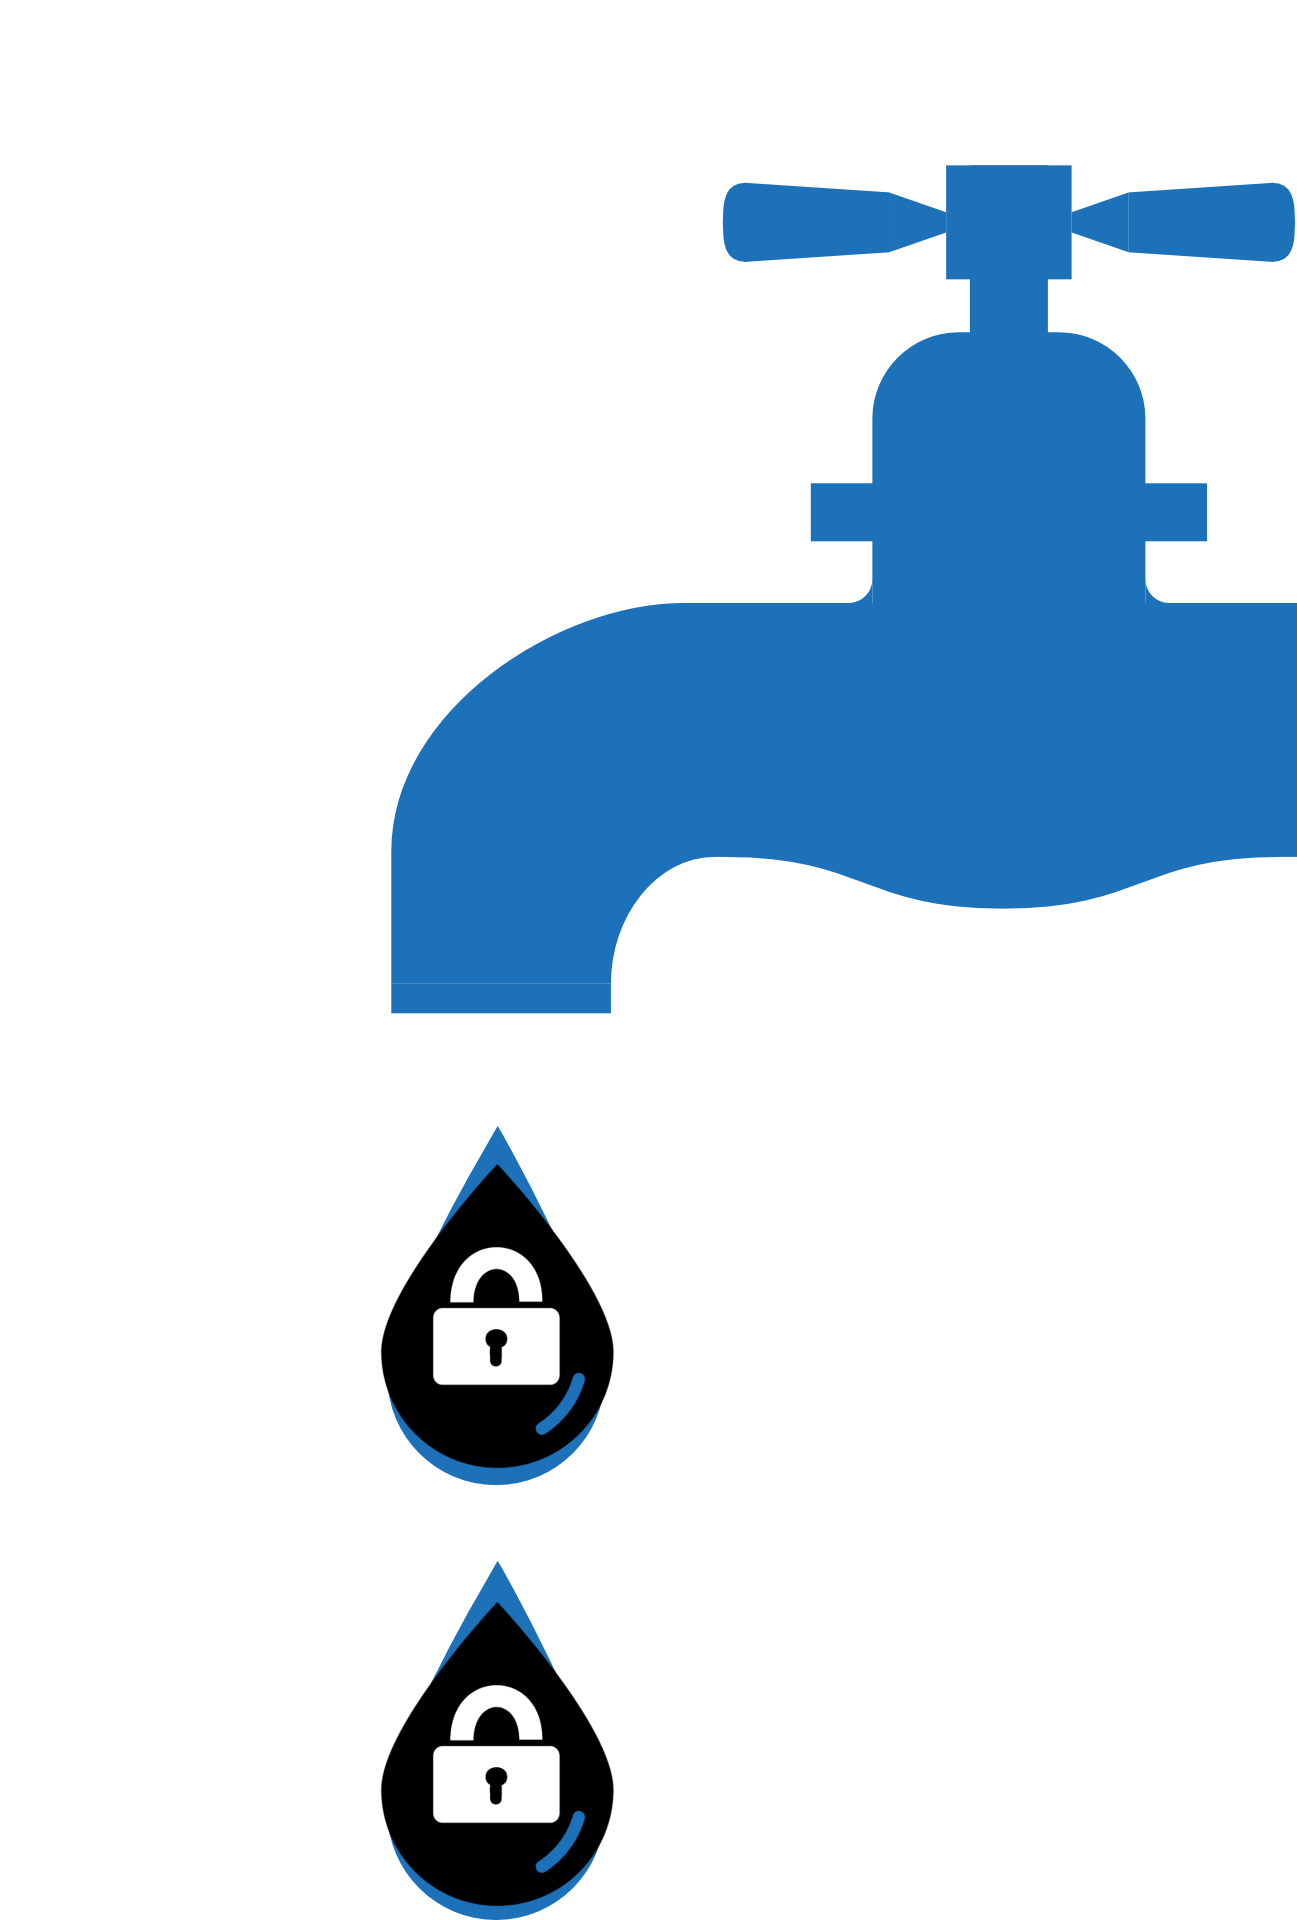 Security drip generic placeholder. Faucet clipart dripping faucet